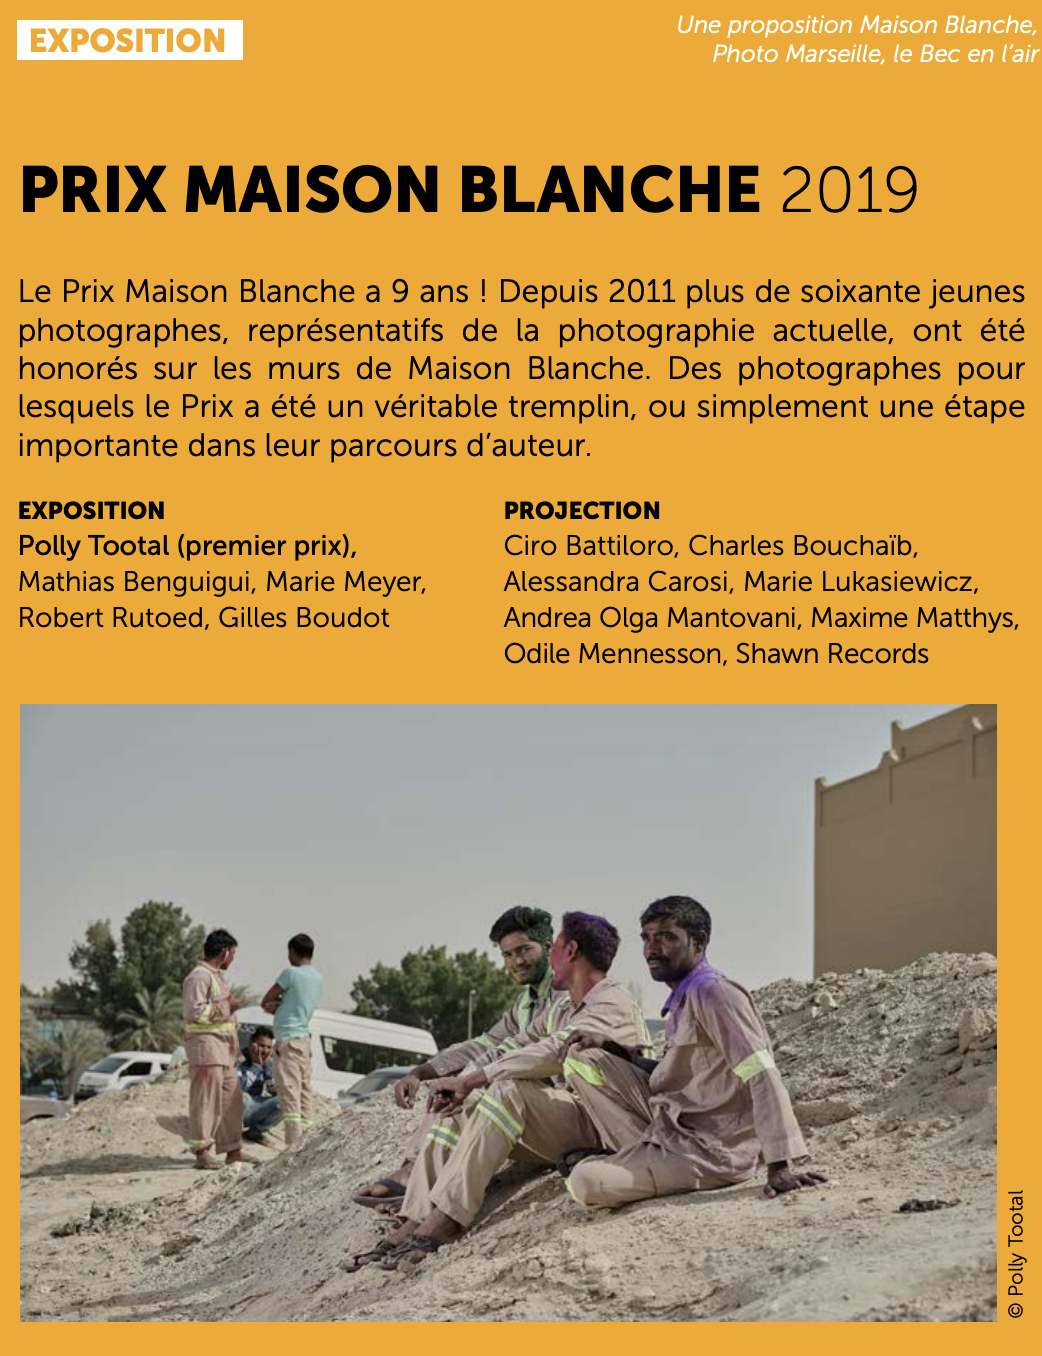 2019 - Premier Prix, Maison Blanche Award, Photo Marseille - Winner